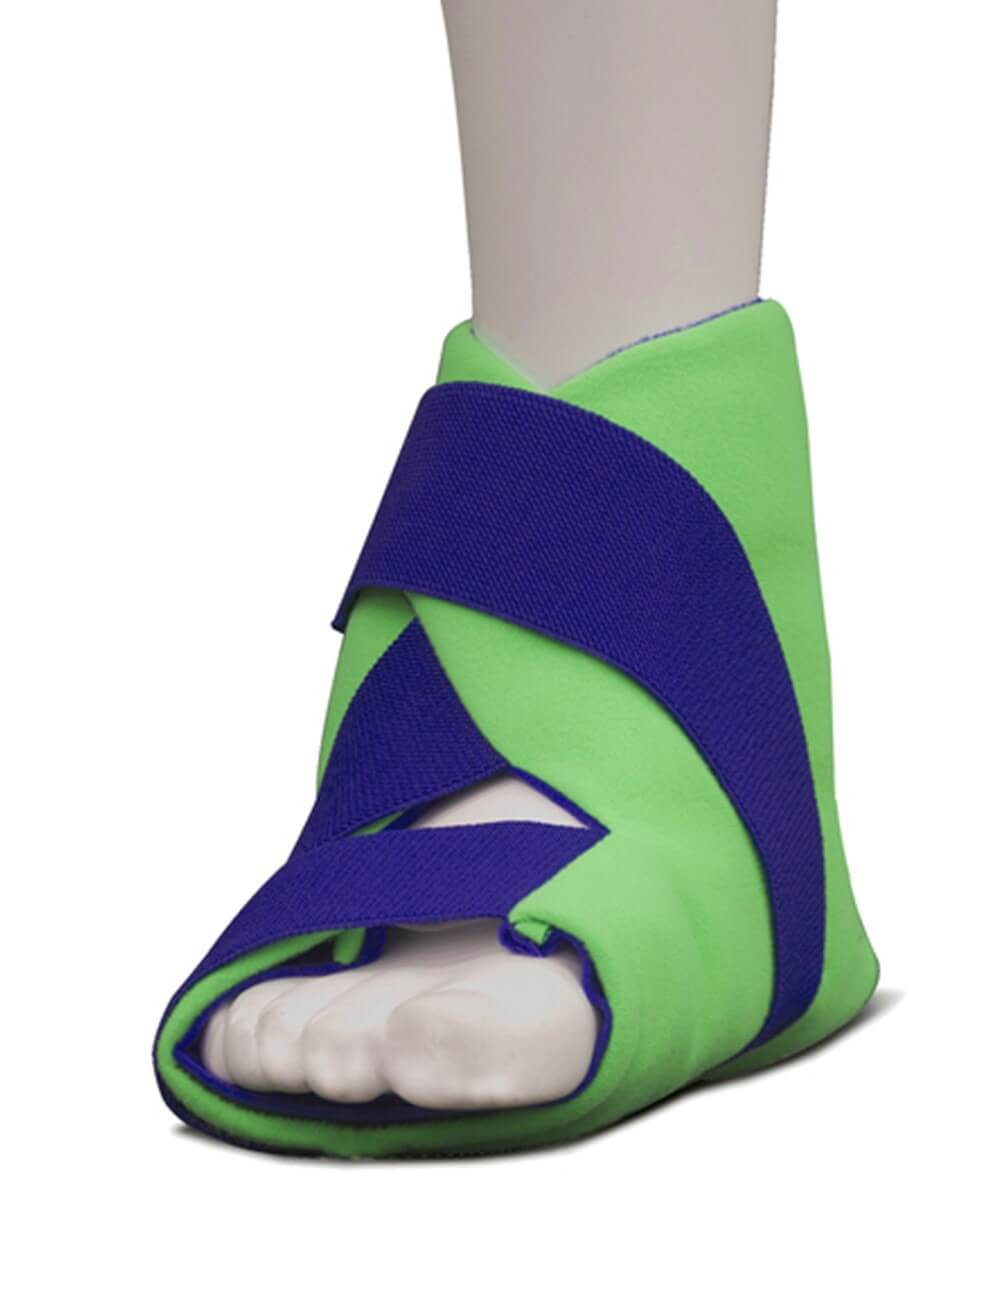 foot ankle ice pack ankle swelling strain injury